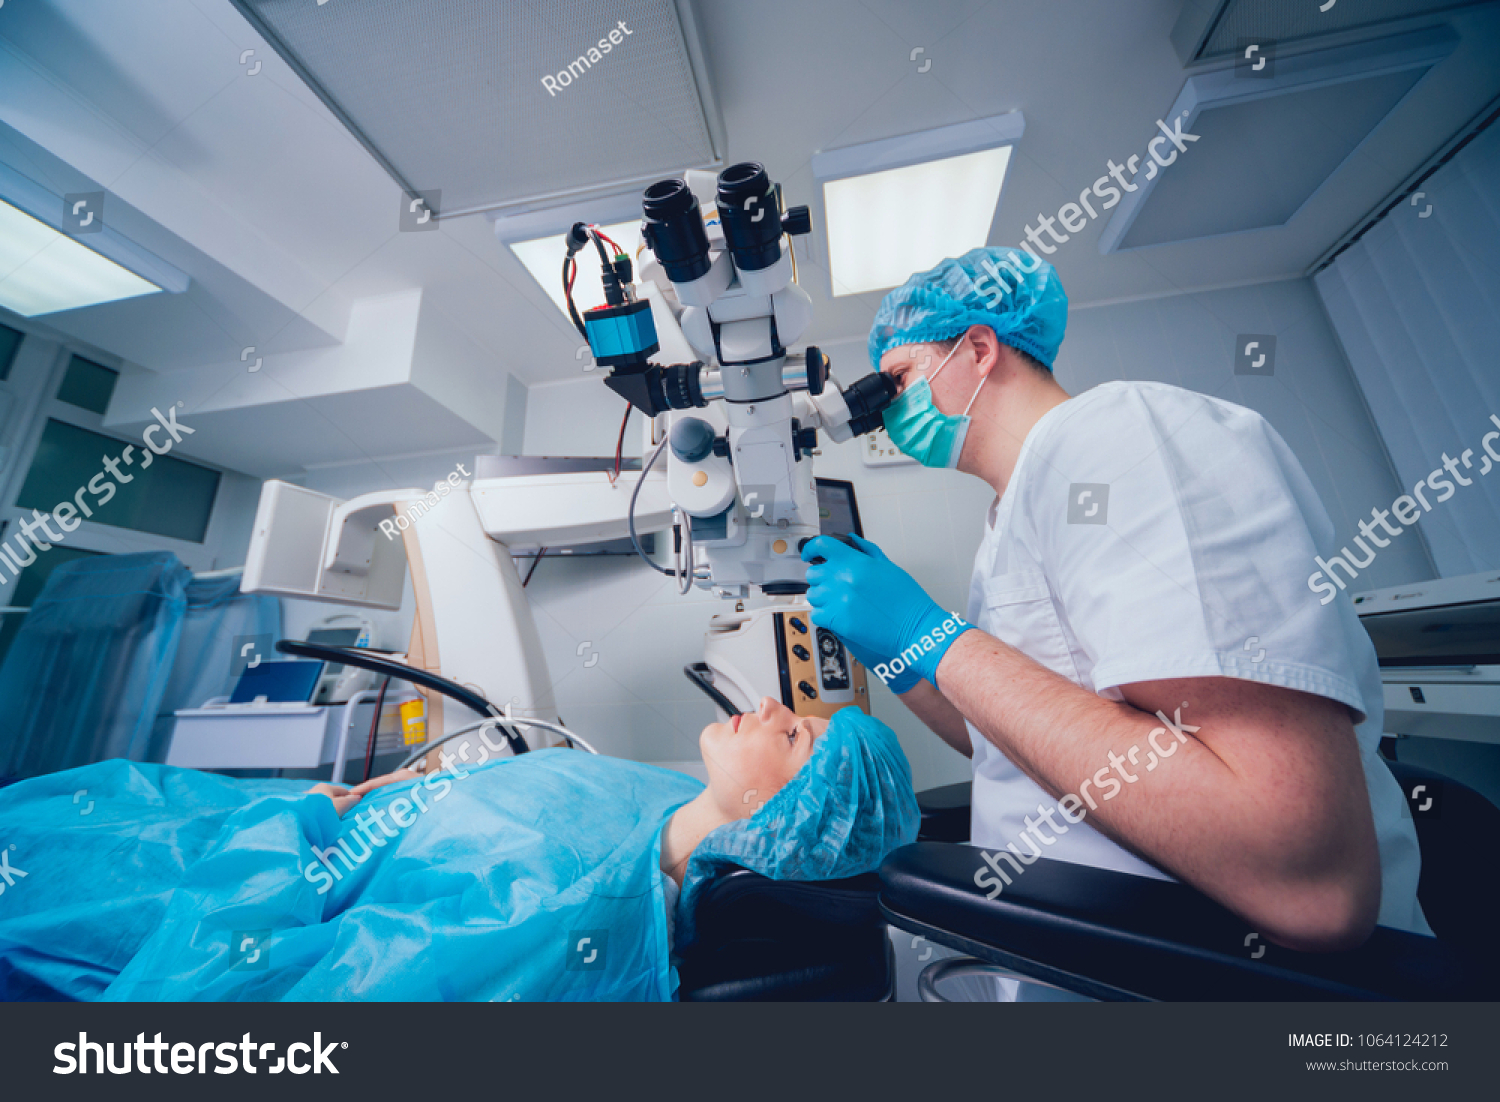 c6d59fdacbf Eye surgery. A patient and surgeon in the operating room during ophthalmic  surgery. Patient